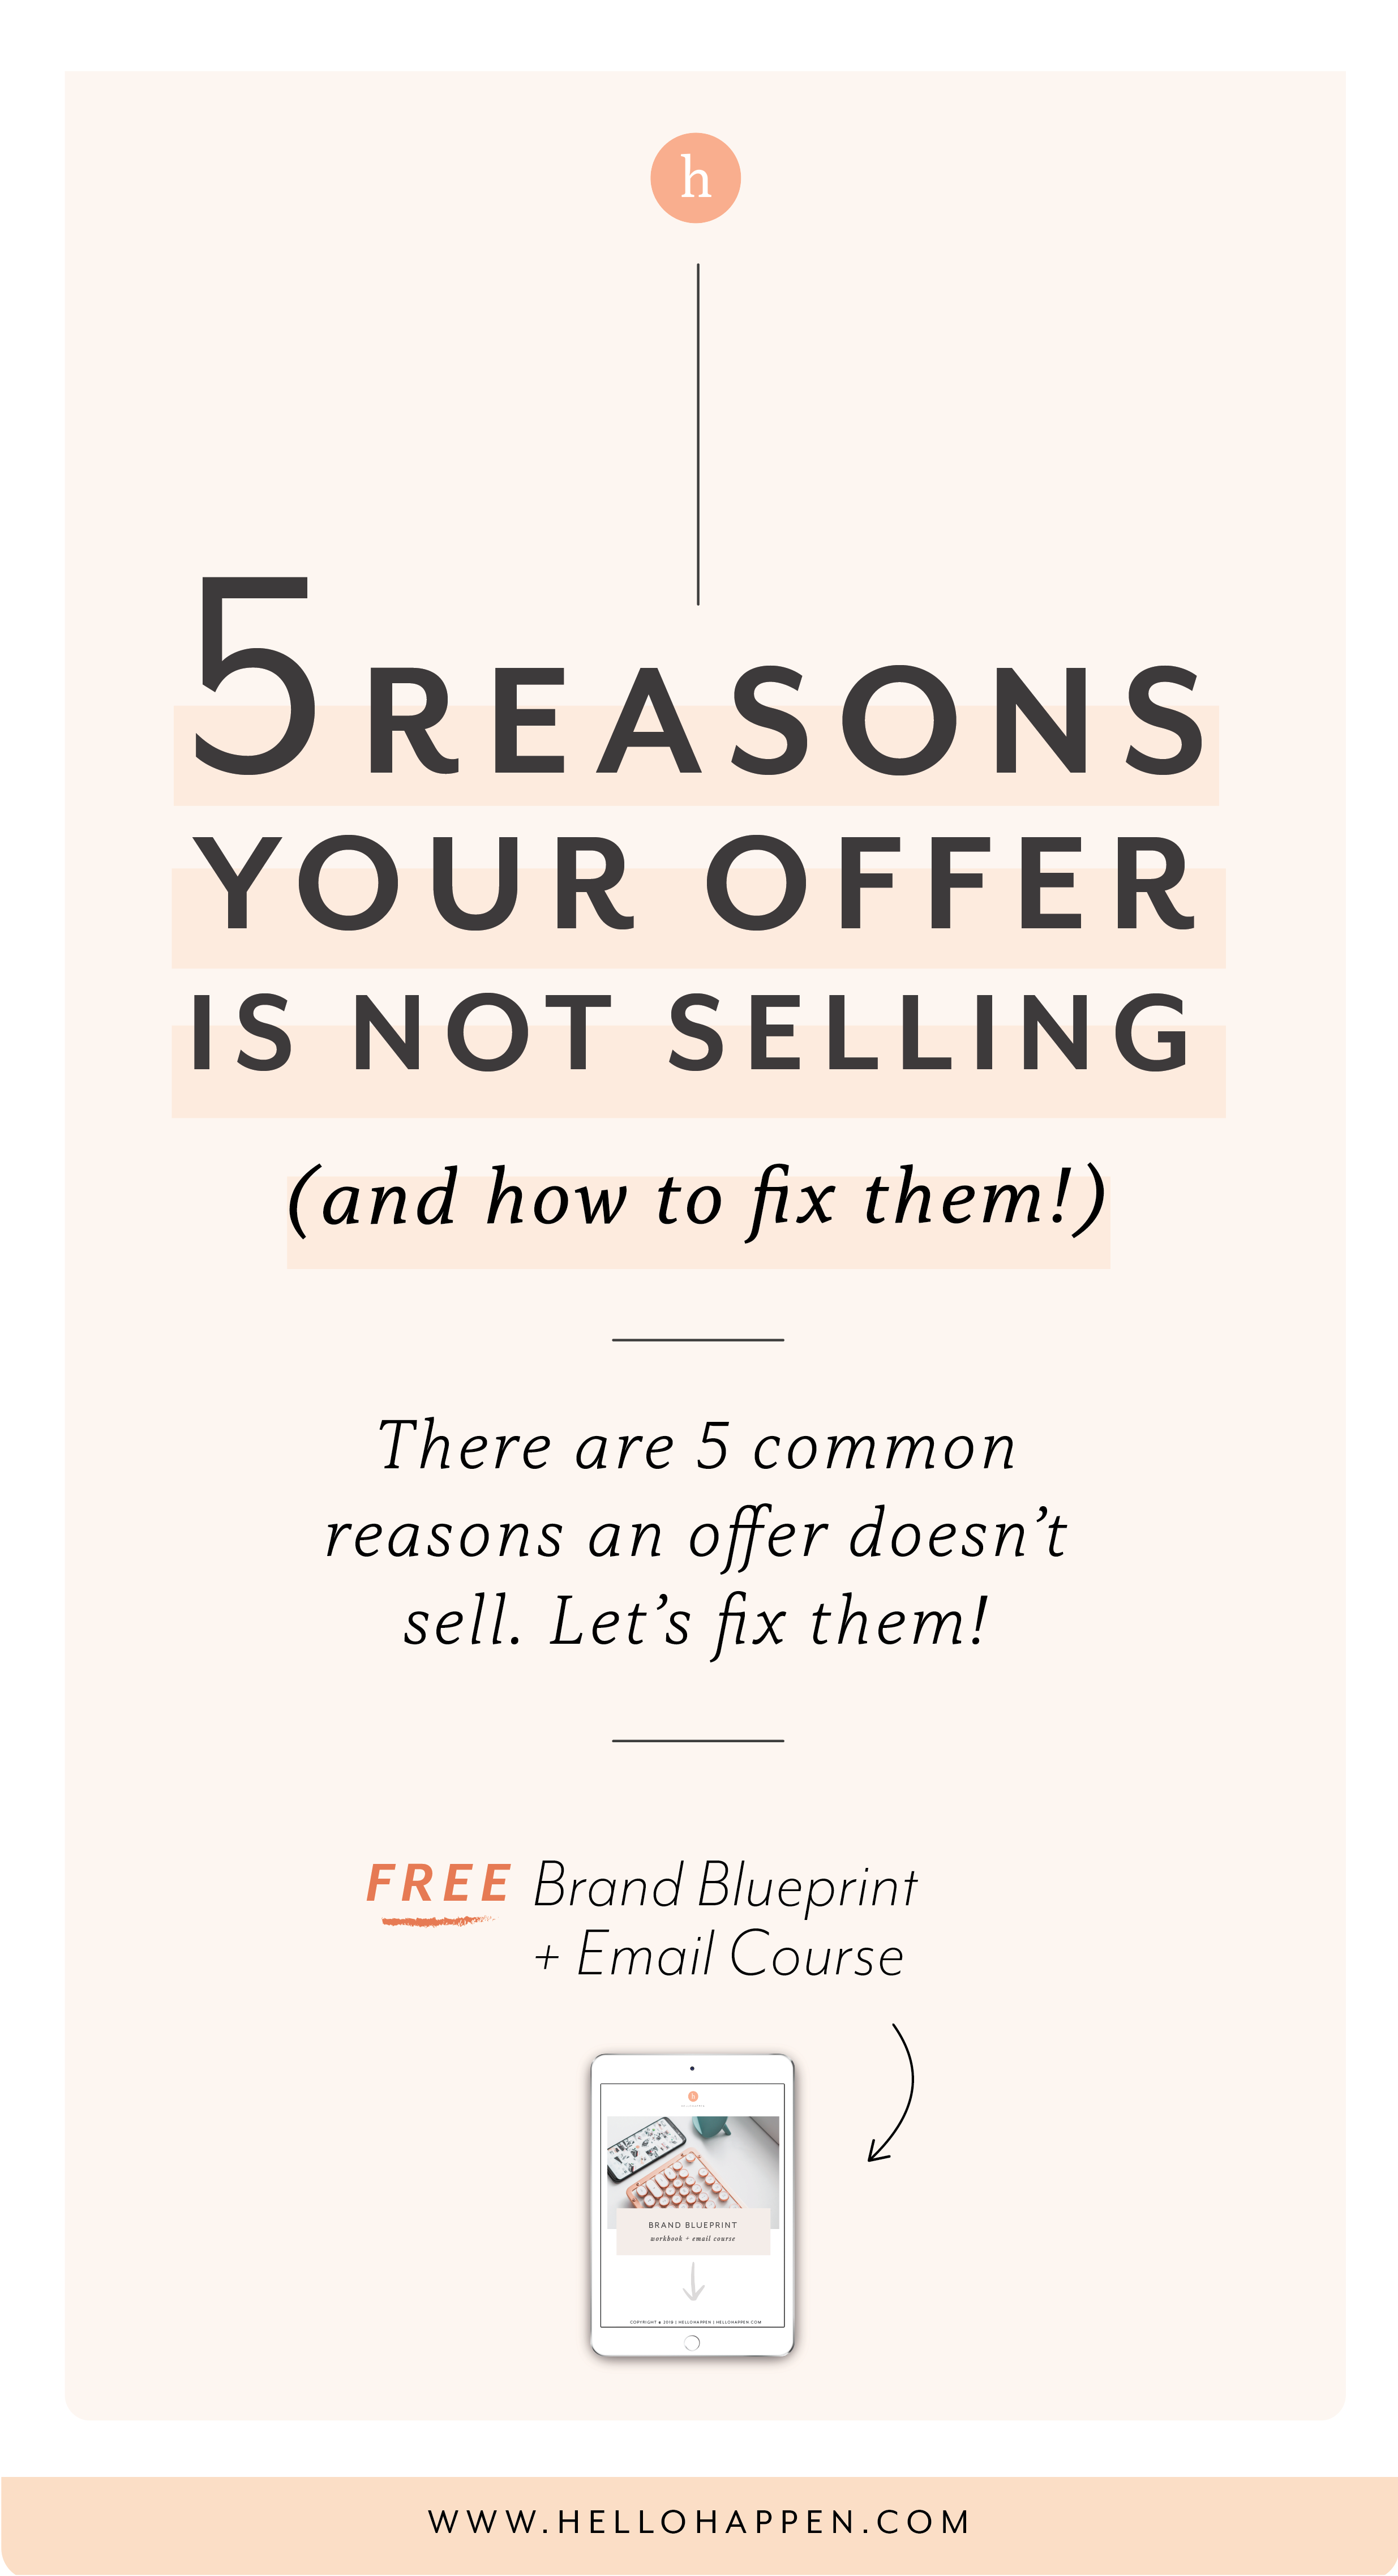 If your offer isn't selling, it's probably for one of these 5 reasons! Give your offer a check-up to figure out what you can do differently to move the needle. // brand strategy / sales strategy / girl boss / #brandstrategy